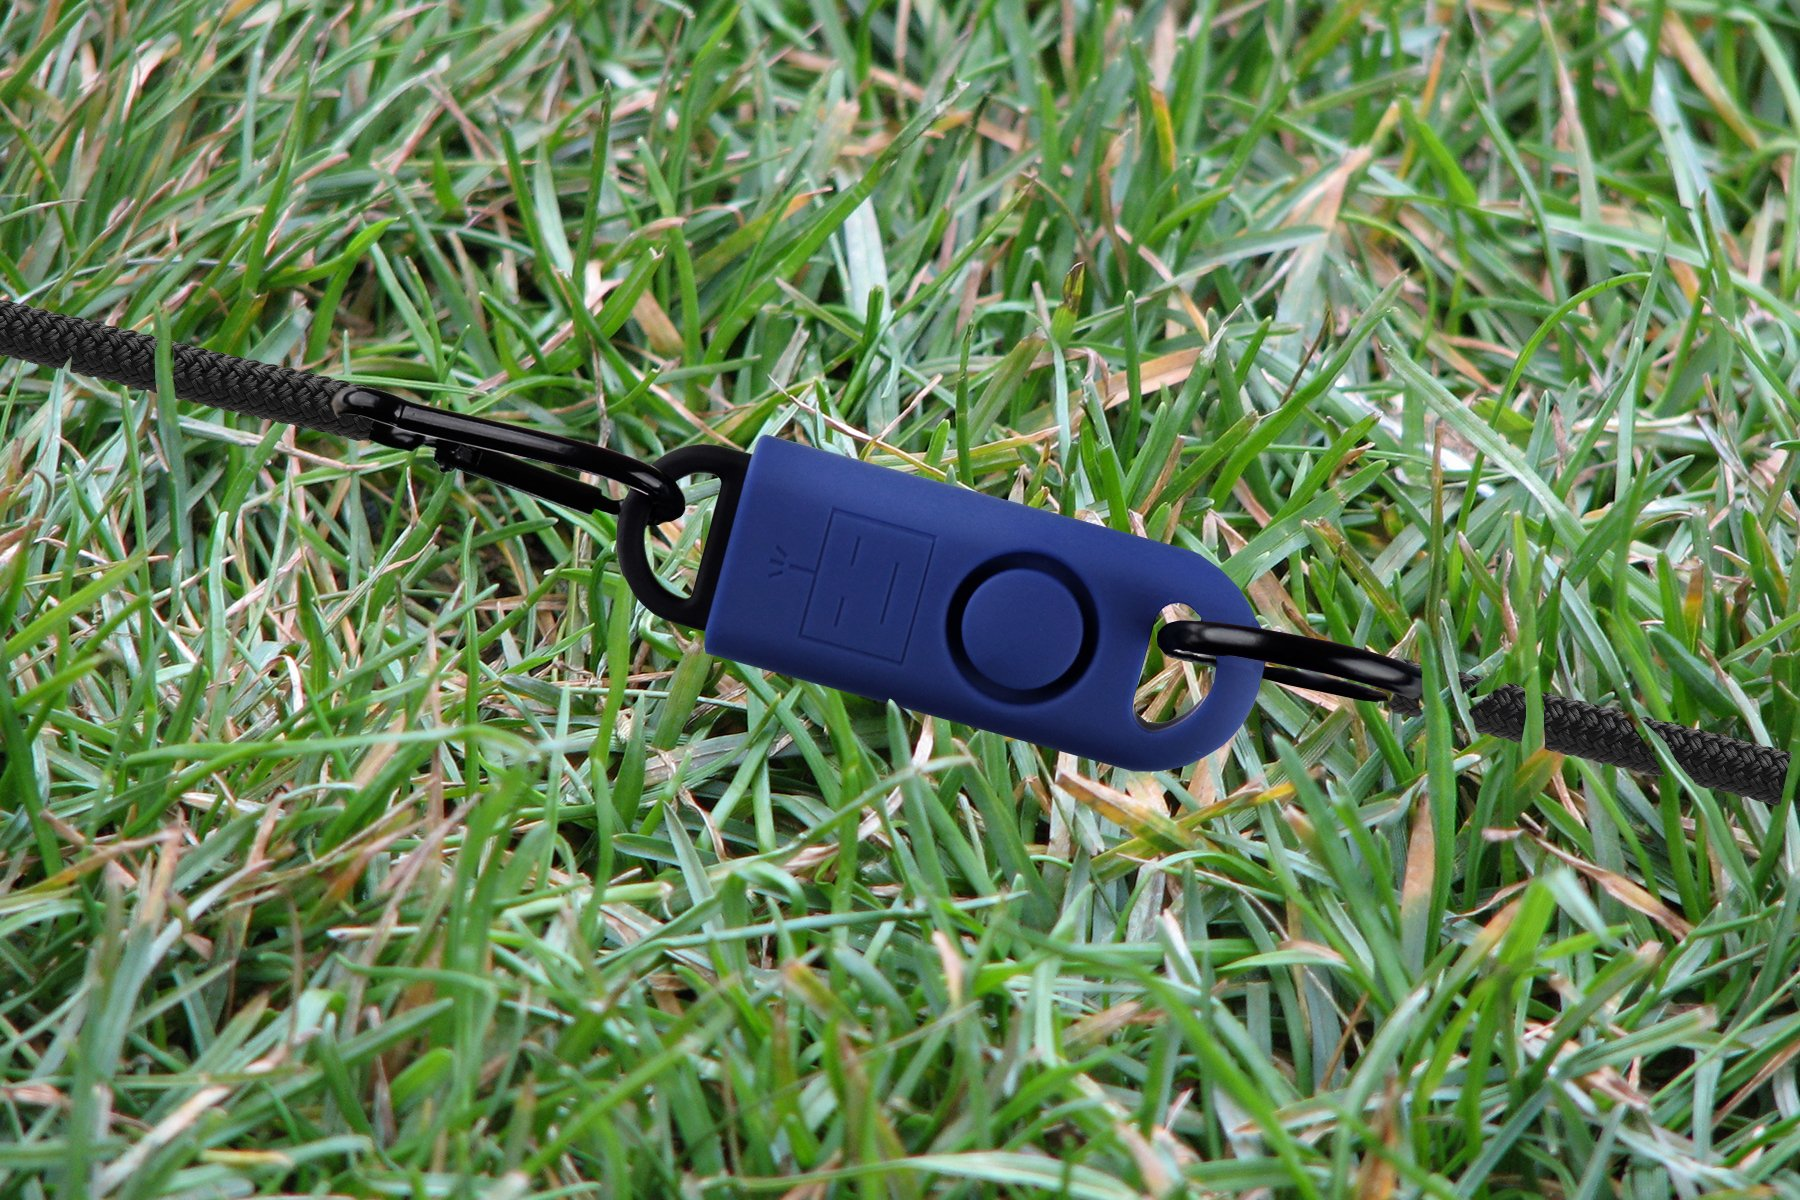 B A S U eAlarm+ with Tripwire Hook, Emergency Personal Alarm, Battery Included, Carabiner Included, Navy Blue by B A S U (Image #6)